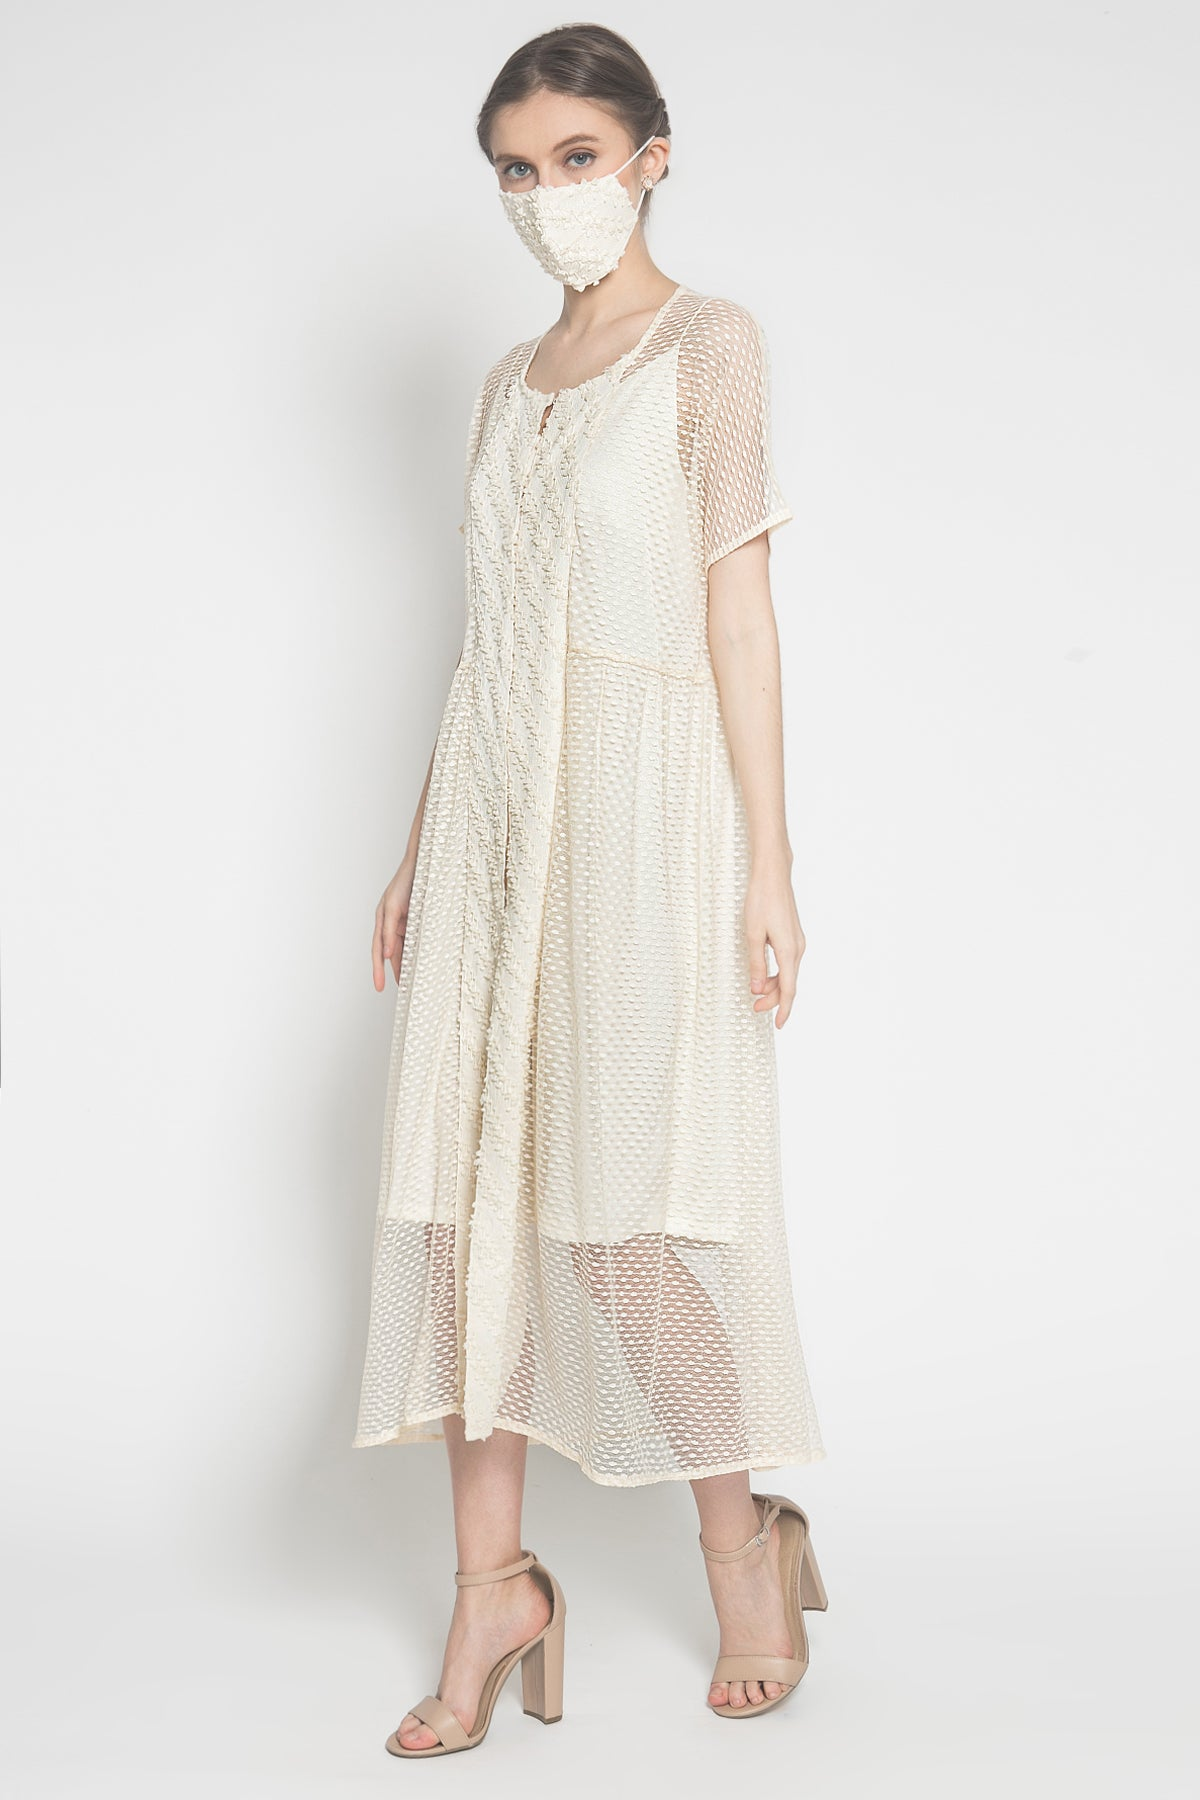 Camani Dress in Ivory